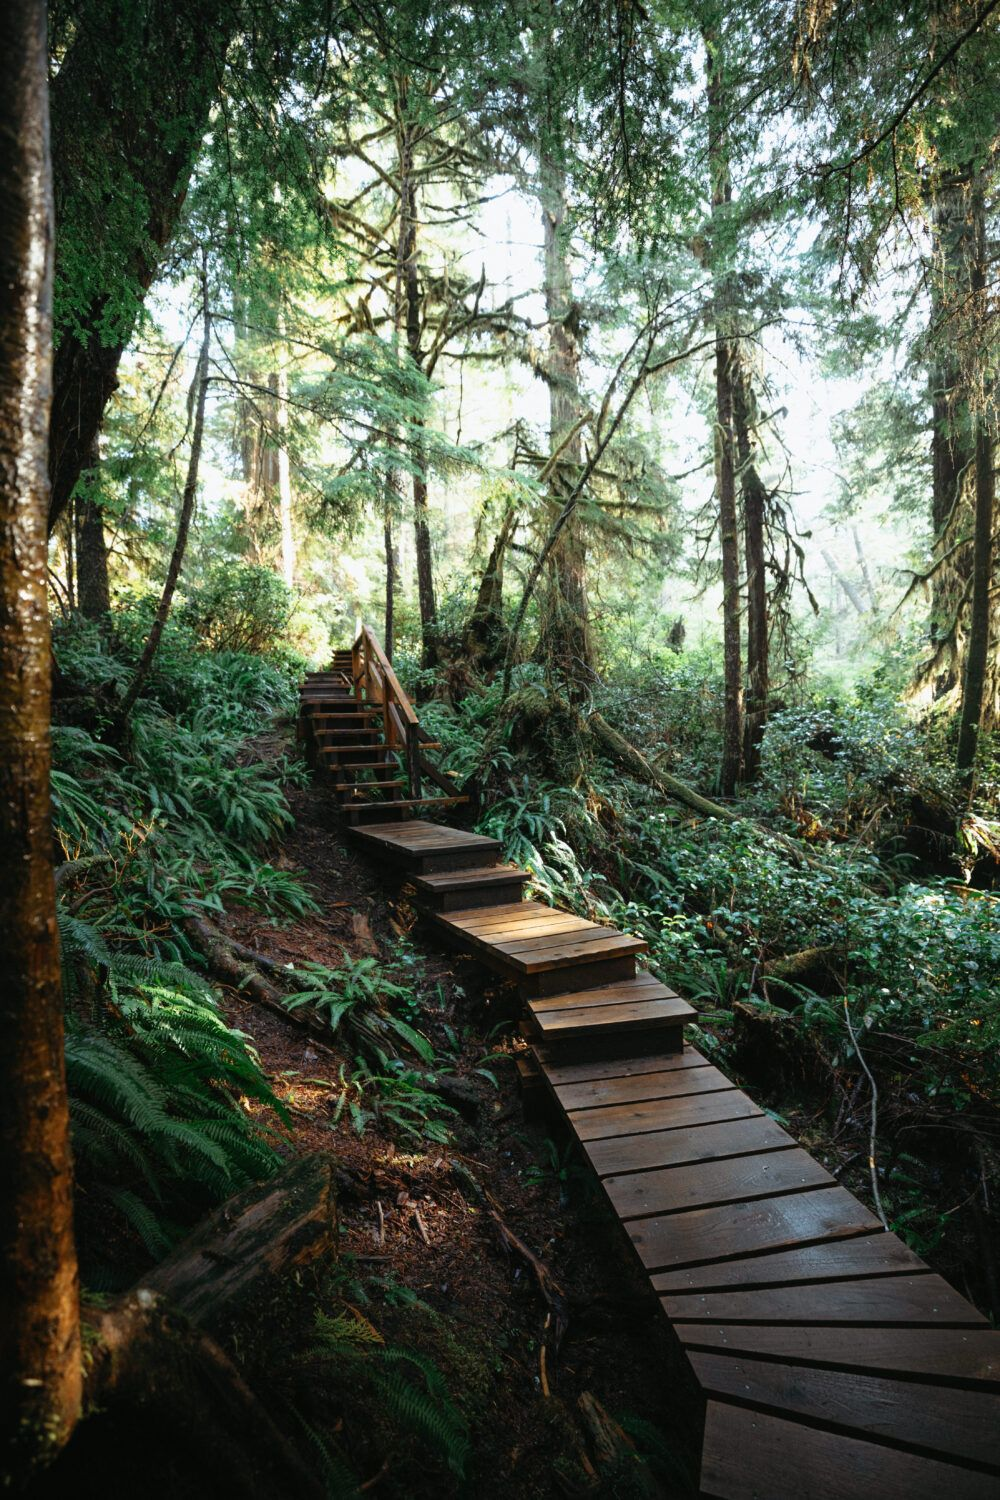 Discover the best things to do in Pacific Rim National Park with our complete guide! We're sharing the best hiking trails, Tofino beaches, and more on Vancouver Island right here! #canada #vancouverisland #PacificRim #britishcolumbia #lake #sunrise #travel #westernUSA #photography #landscape #PacificRimNationalPark #rainforest